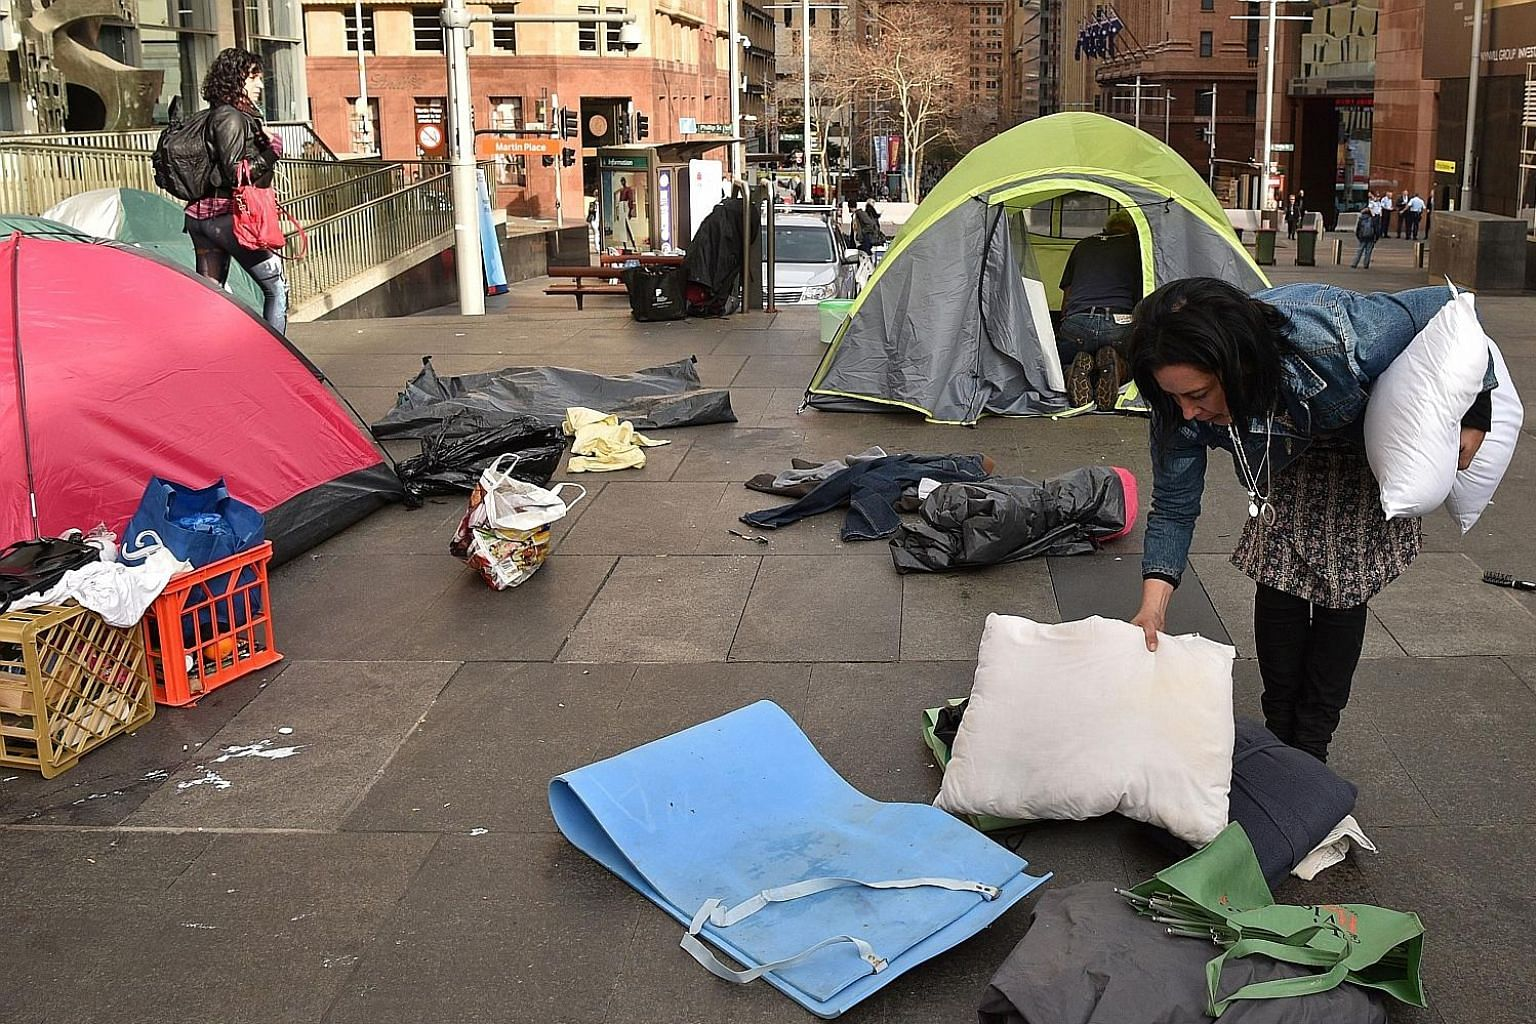 """A homeless woman packing up her belongings in Martin Place, which had become known as """"tent city"""", in the central business district of Sydney yesterday. The camp had become the most visible symbol of the lack of low-cost accommodation in Sydney."""